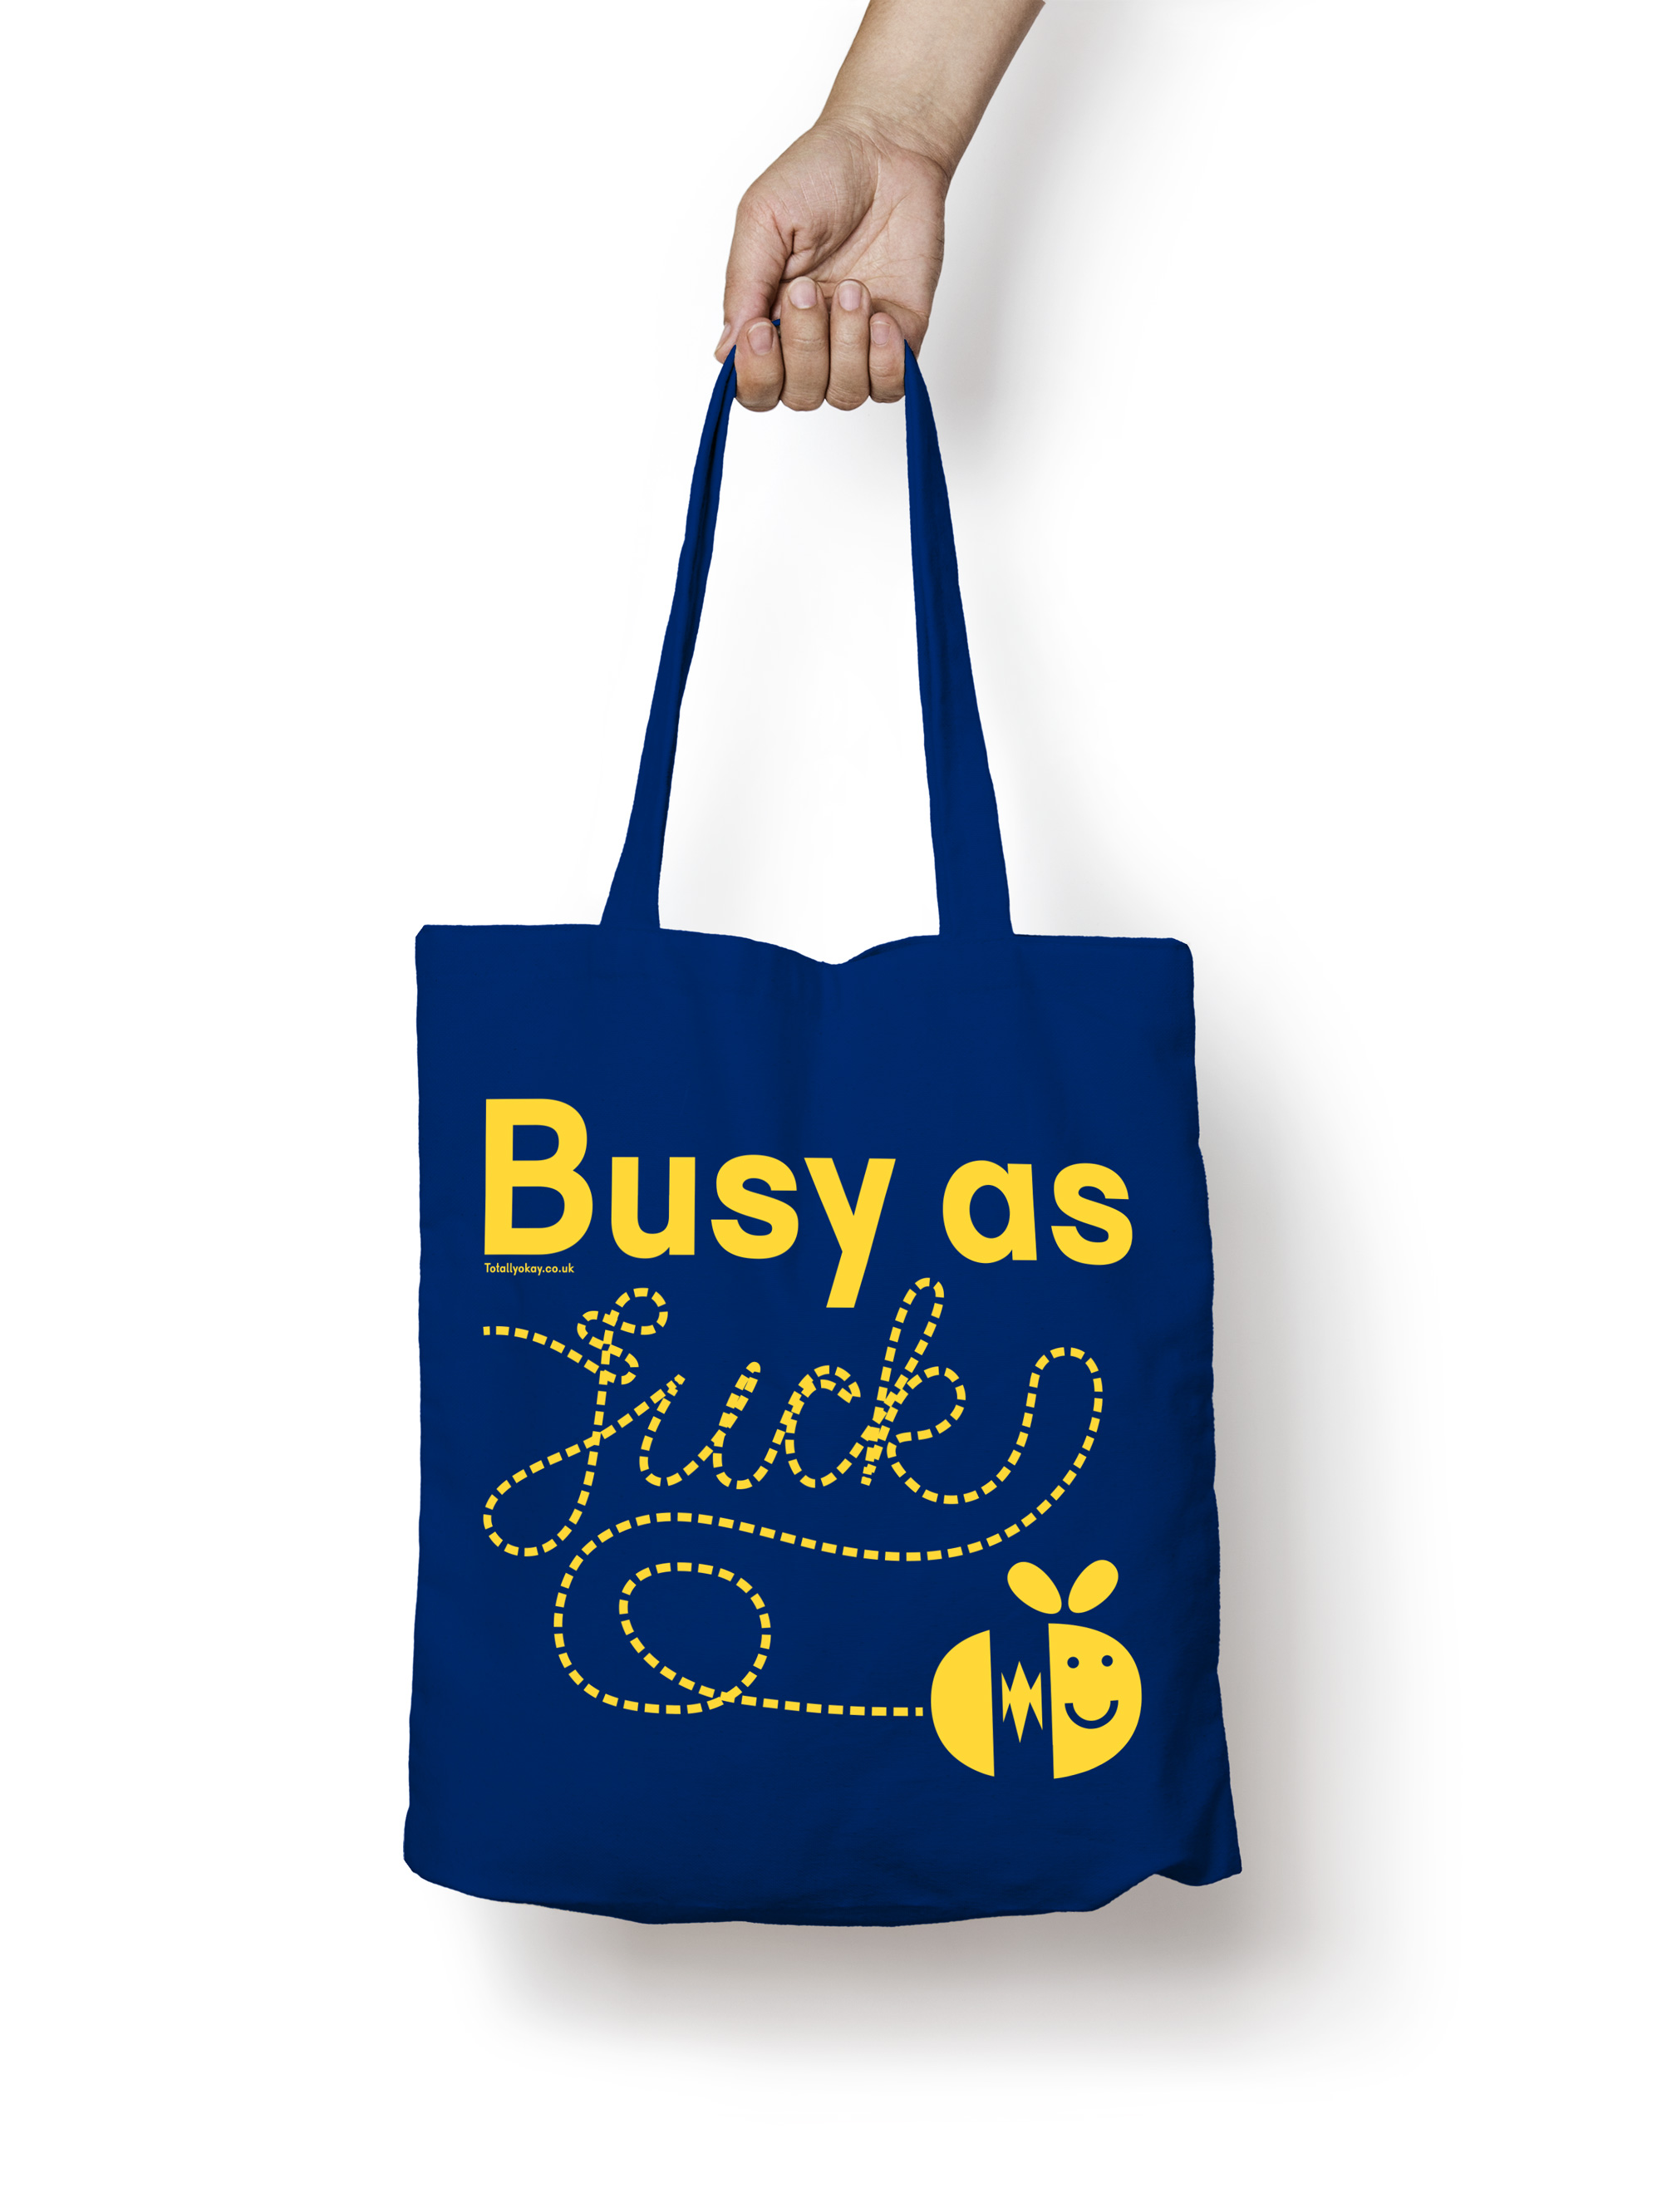 Busy As tote bag design